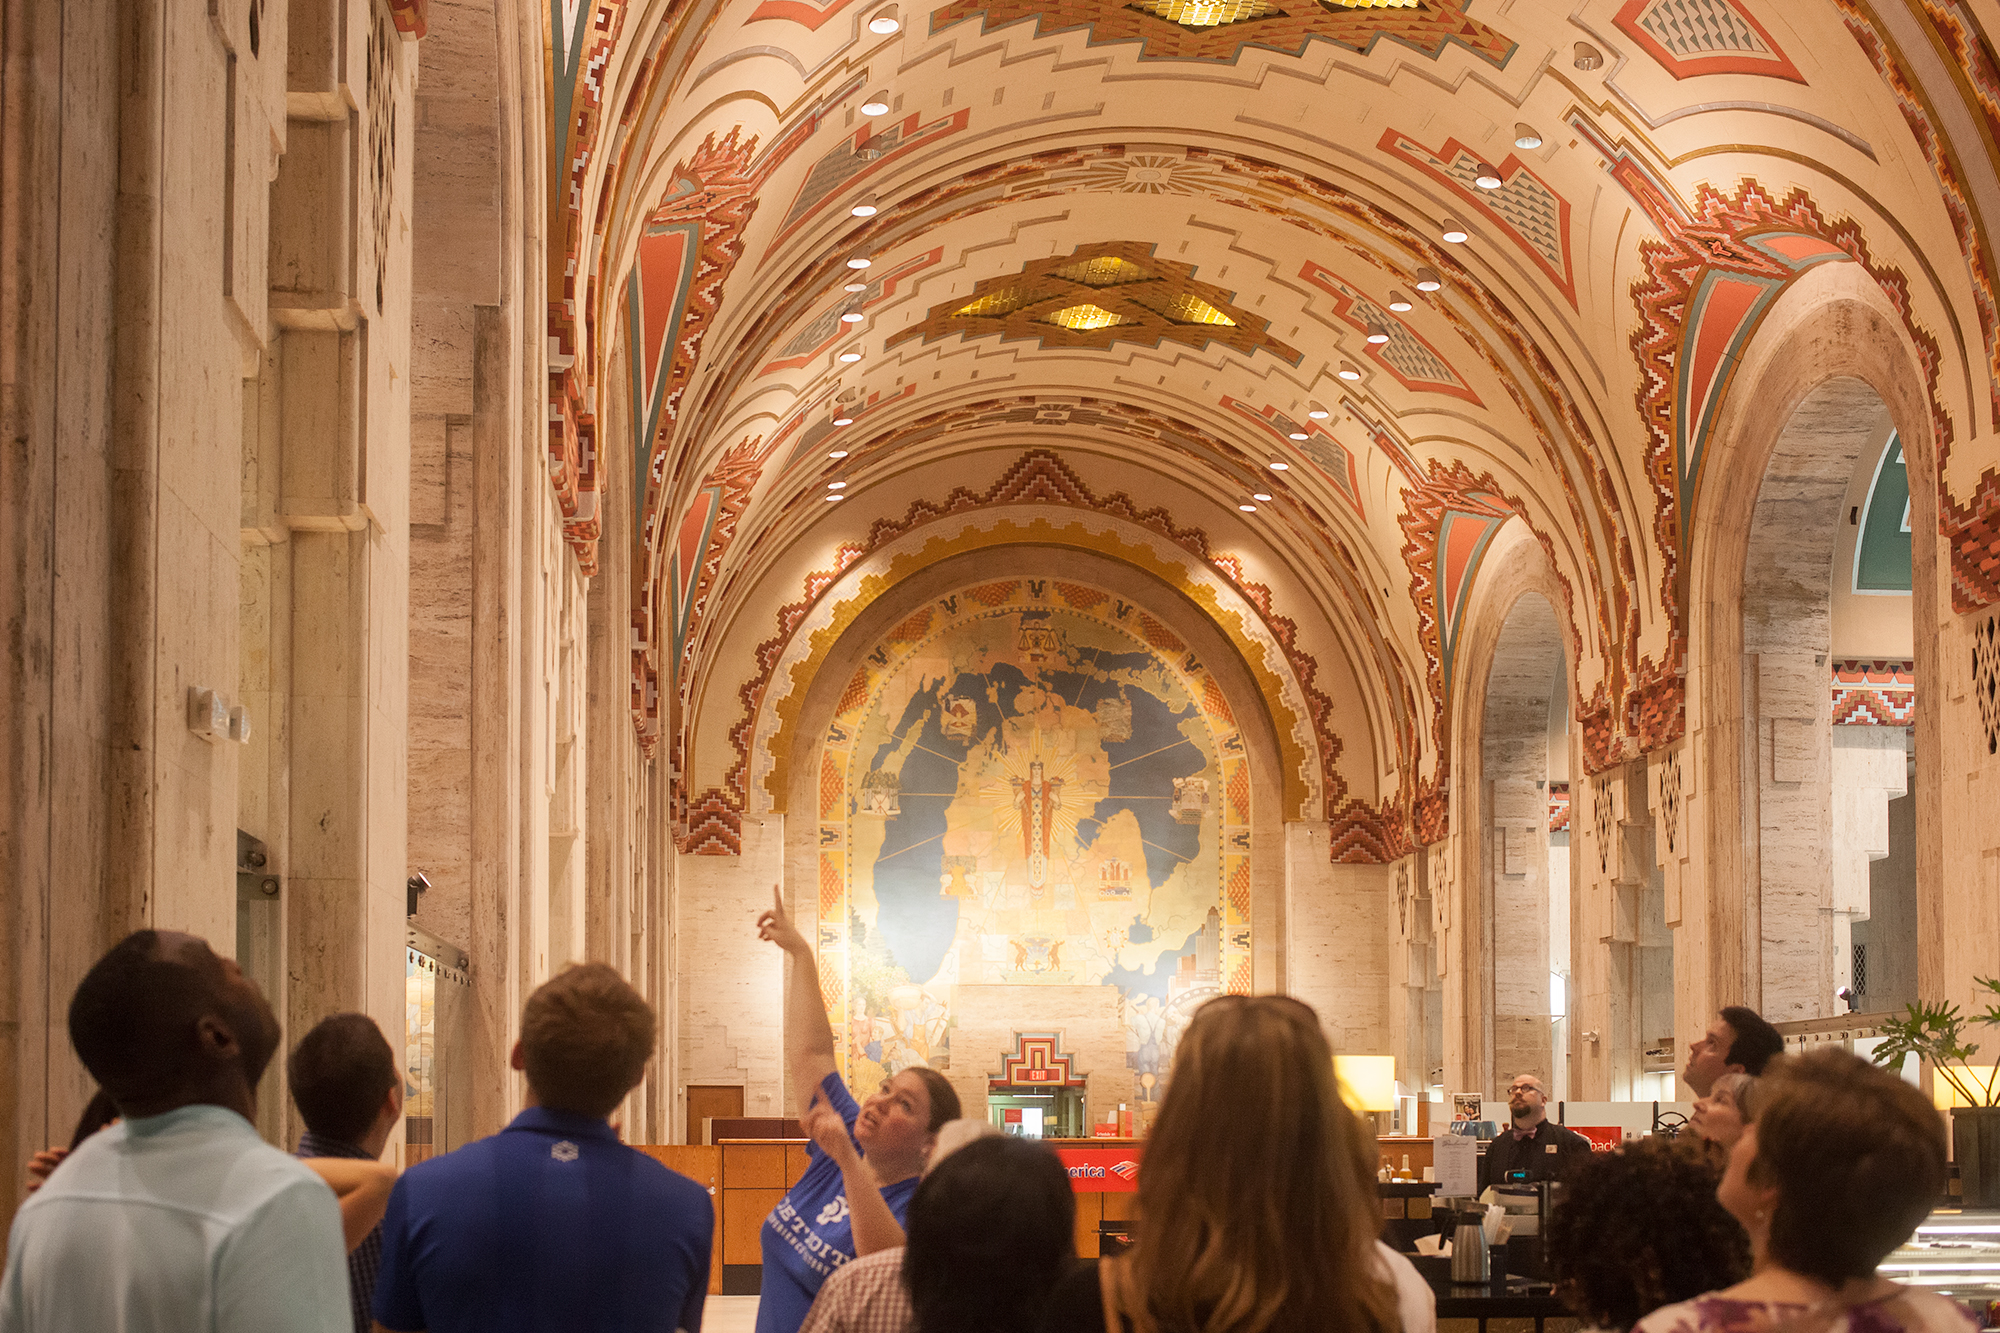 Highlights include:  The Guardian Building, The Riverwalk and Rivard Plaza, Heidelberg Project, Willis/Canfield Retail District